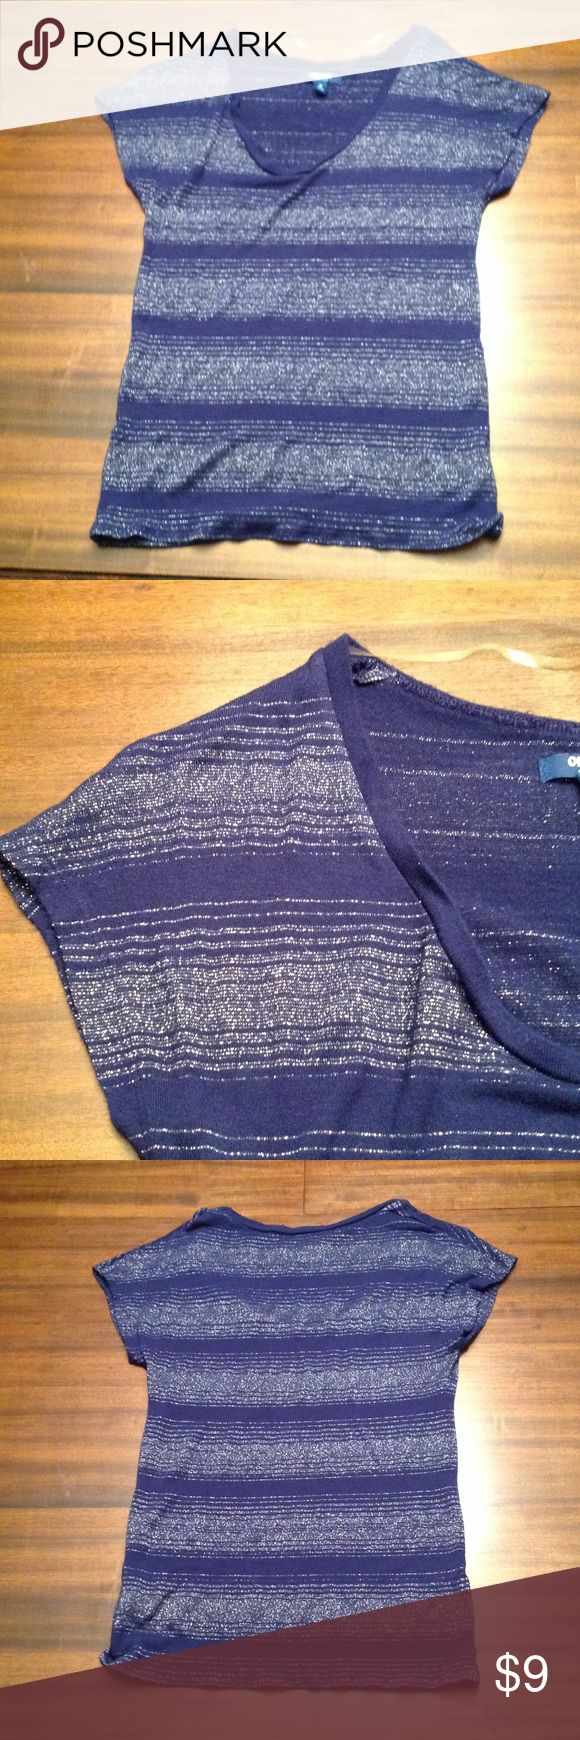 OLD Navy Blue & Silver top XS OLD NAVy dark blue and silver metallic tee. It is and XS and in very good condition Old Navy Tops Tees - Short Sleeve